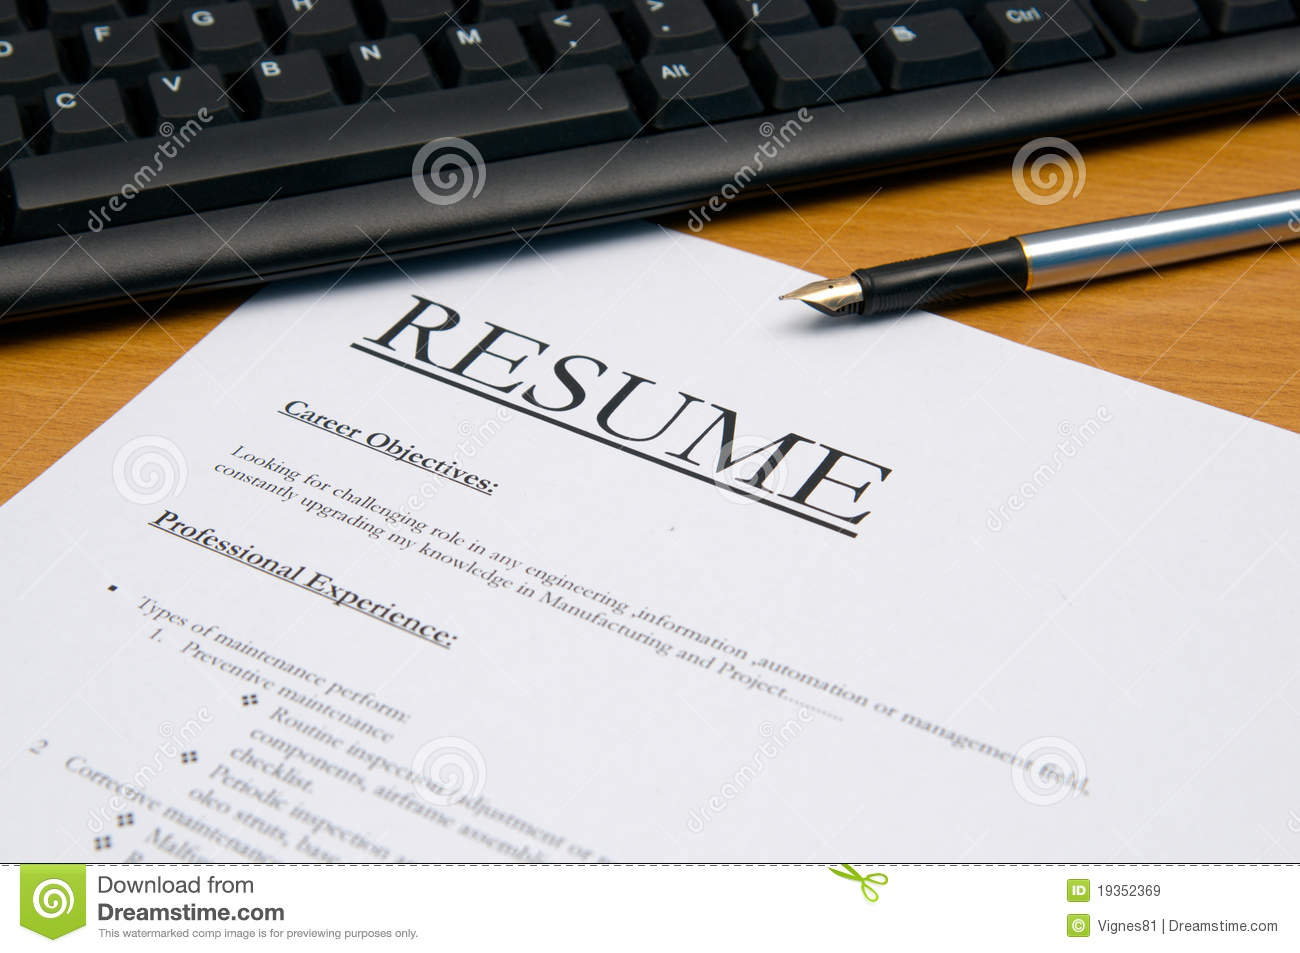 resume cv stock image of qualified history graduate free photos layout for college Resume Free Stock Photos Resume